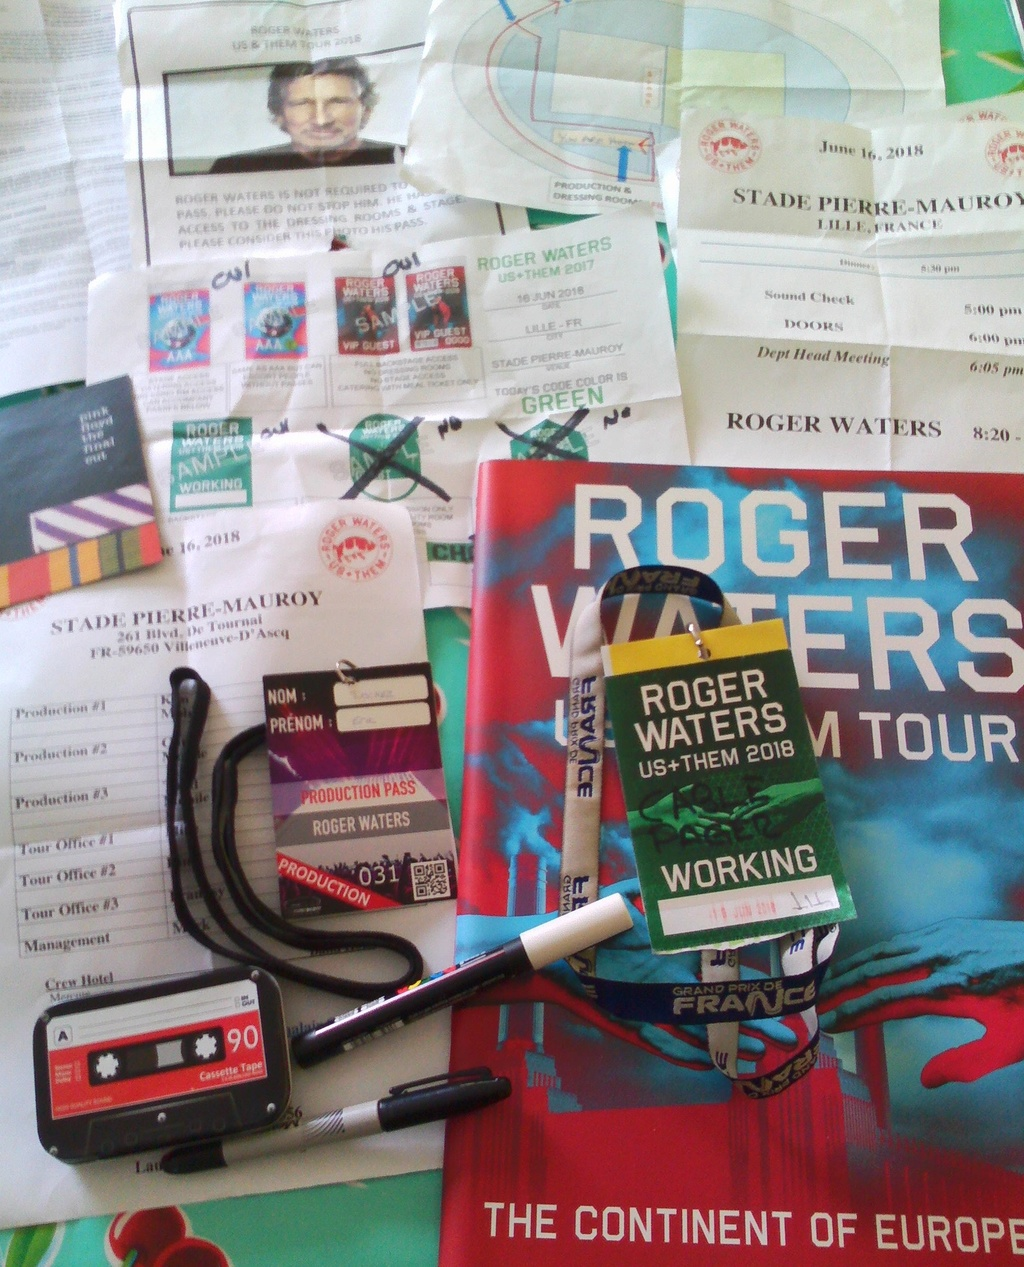 ROGER WATERS - Lille - Stade Pierre Mauroy - 16 juin 2018 - Page 6 12312311